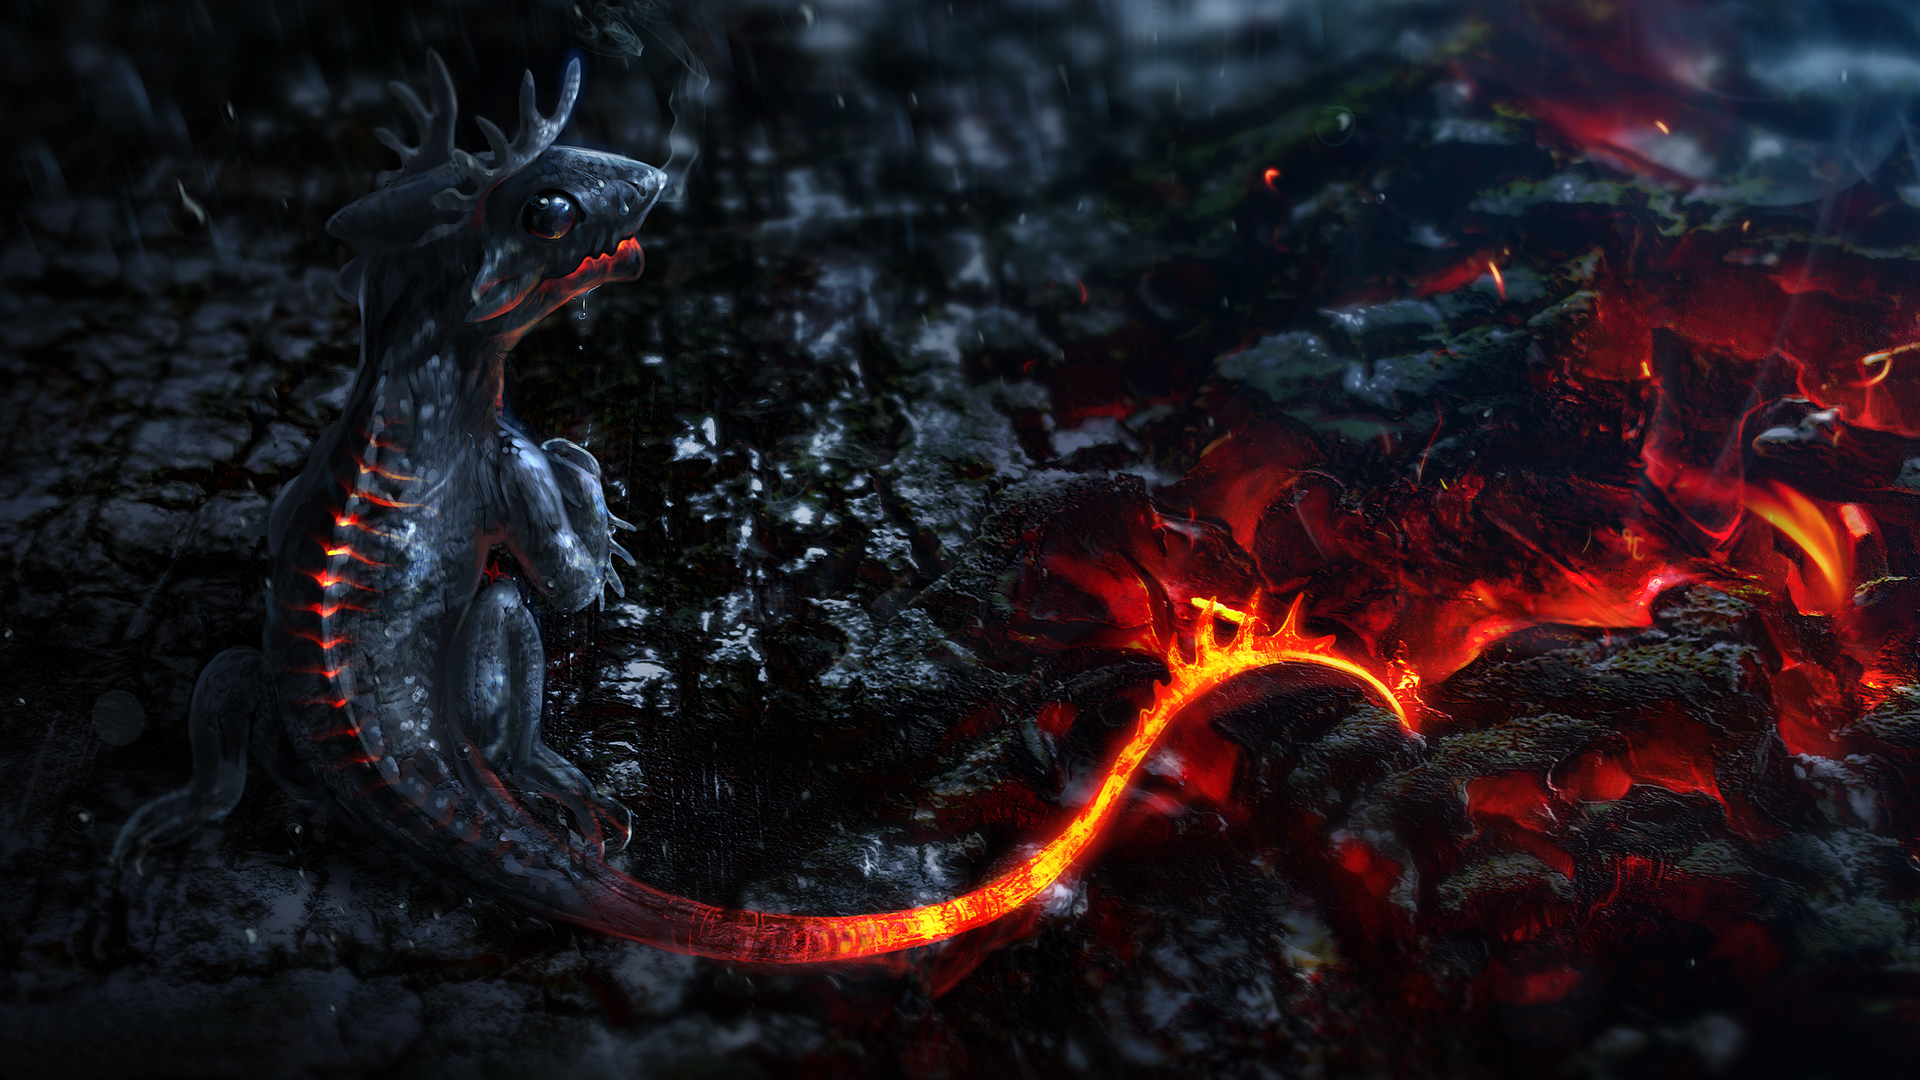 Dragon Red 3D Wallpaper 1920×1080